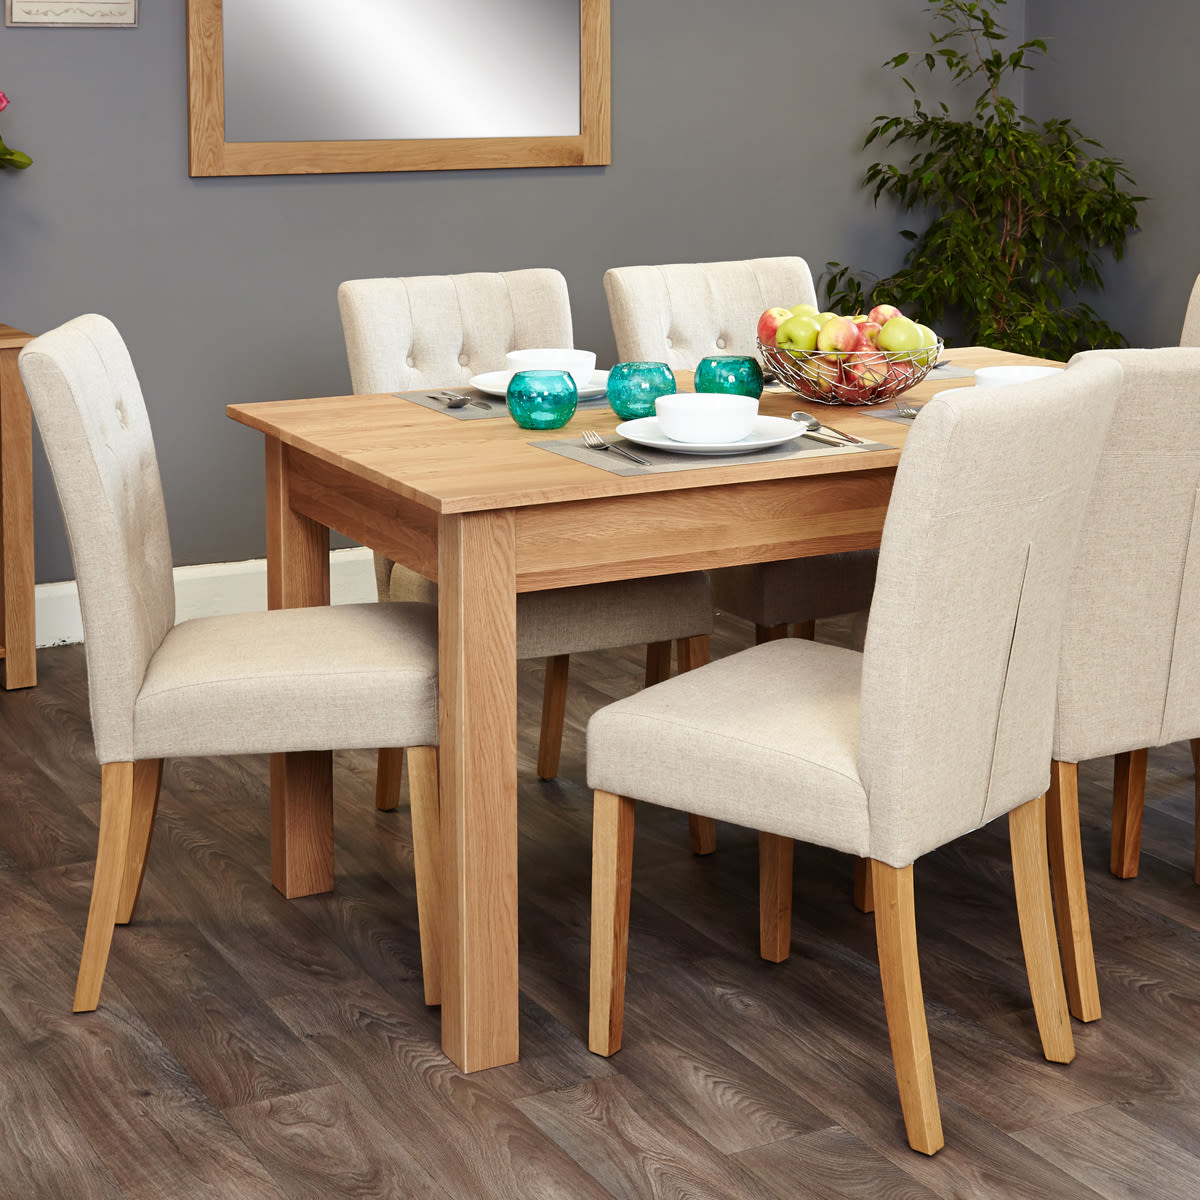 mobel oak 4 6 seat table and 6 cream chairs was 1 099 00 now 899 00 wooden furniture store